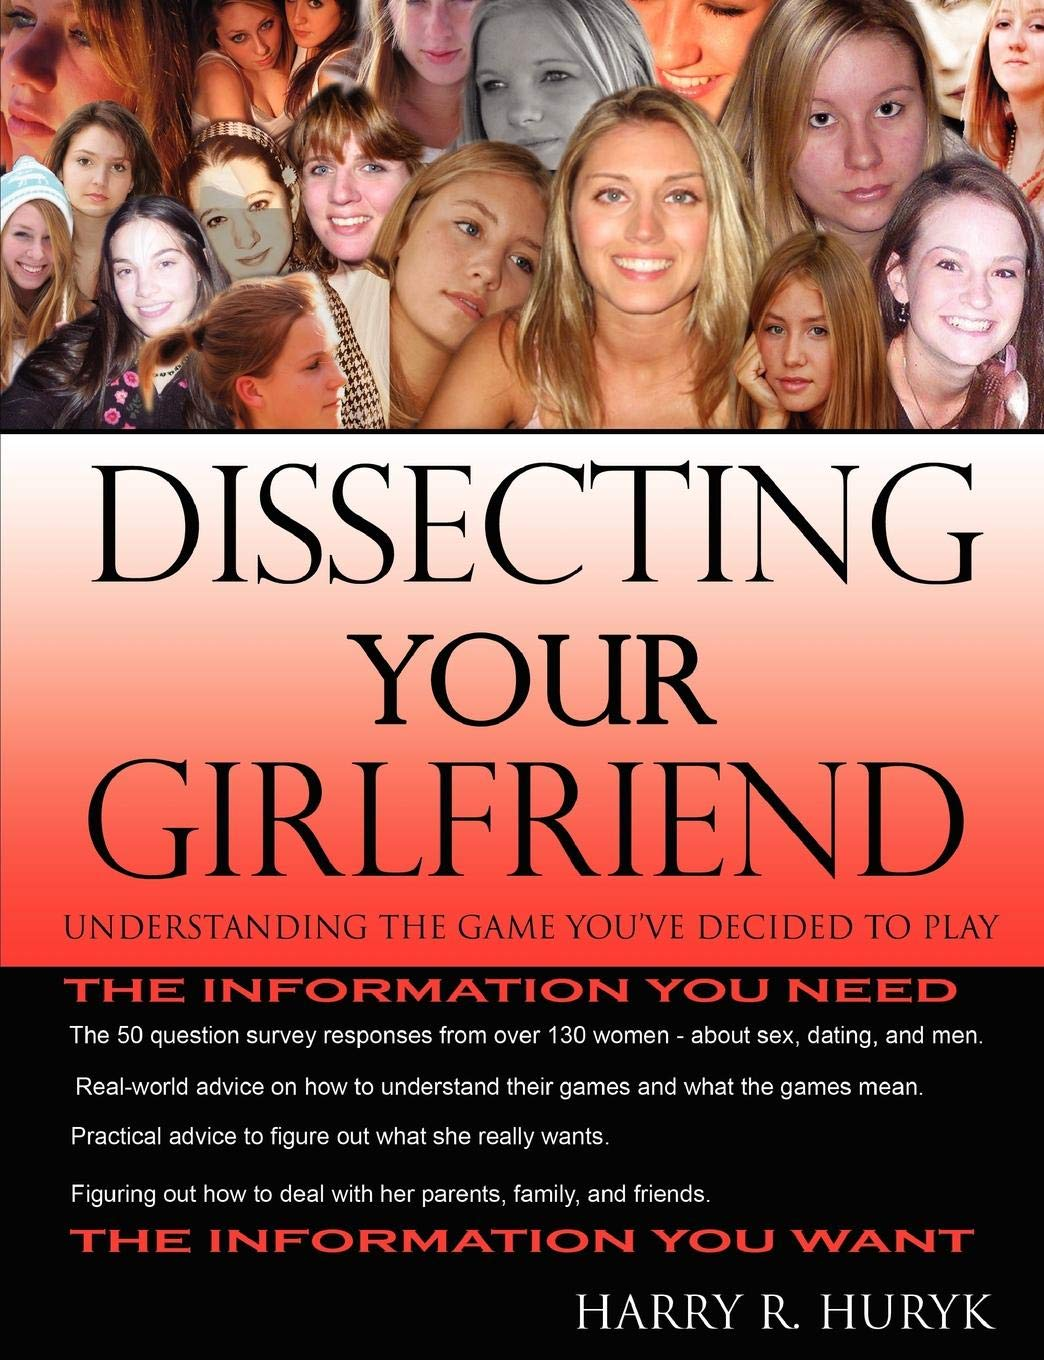 #3: Expand on her interest